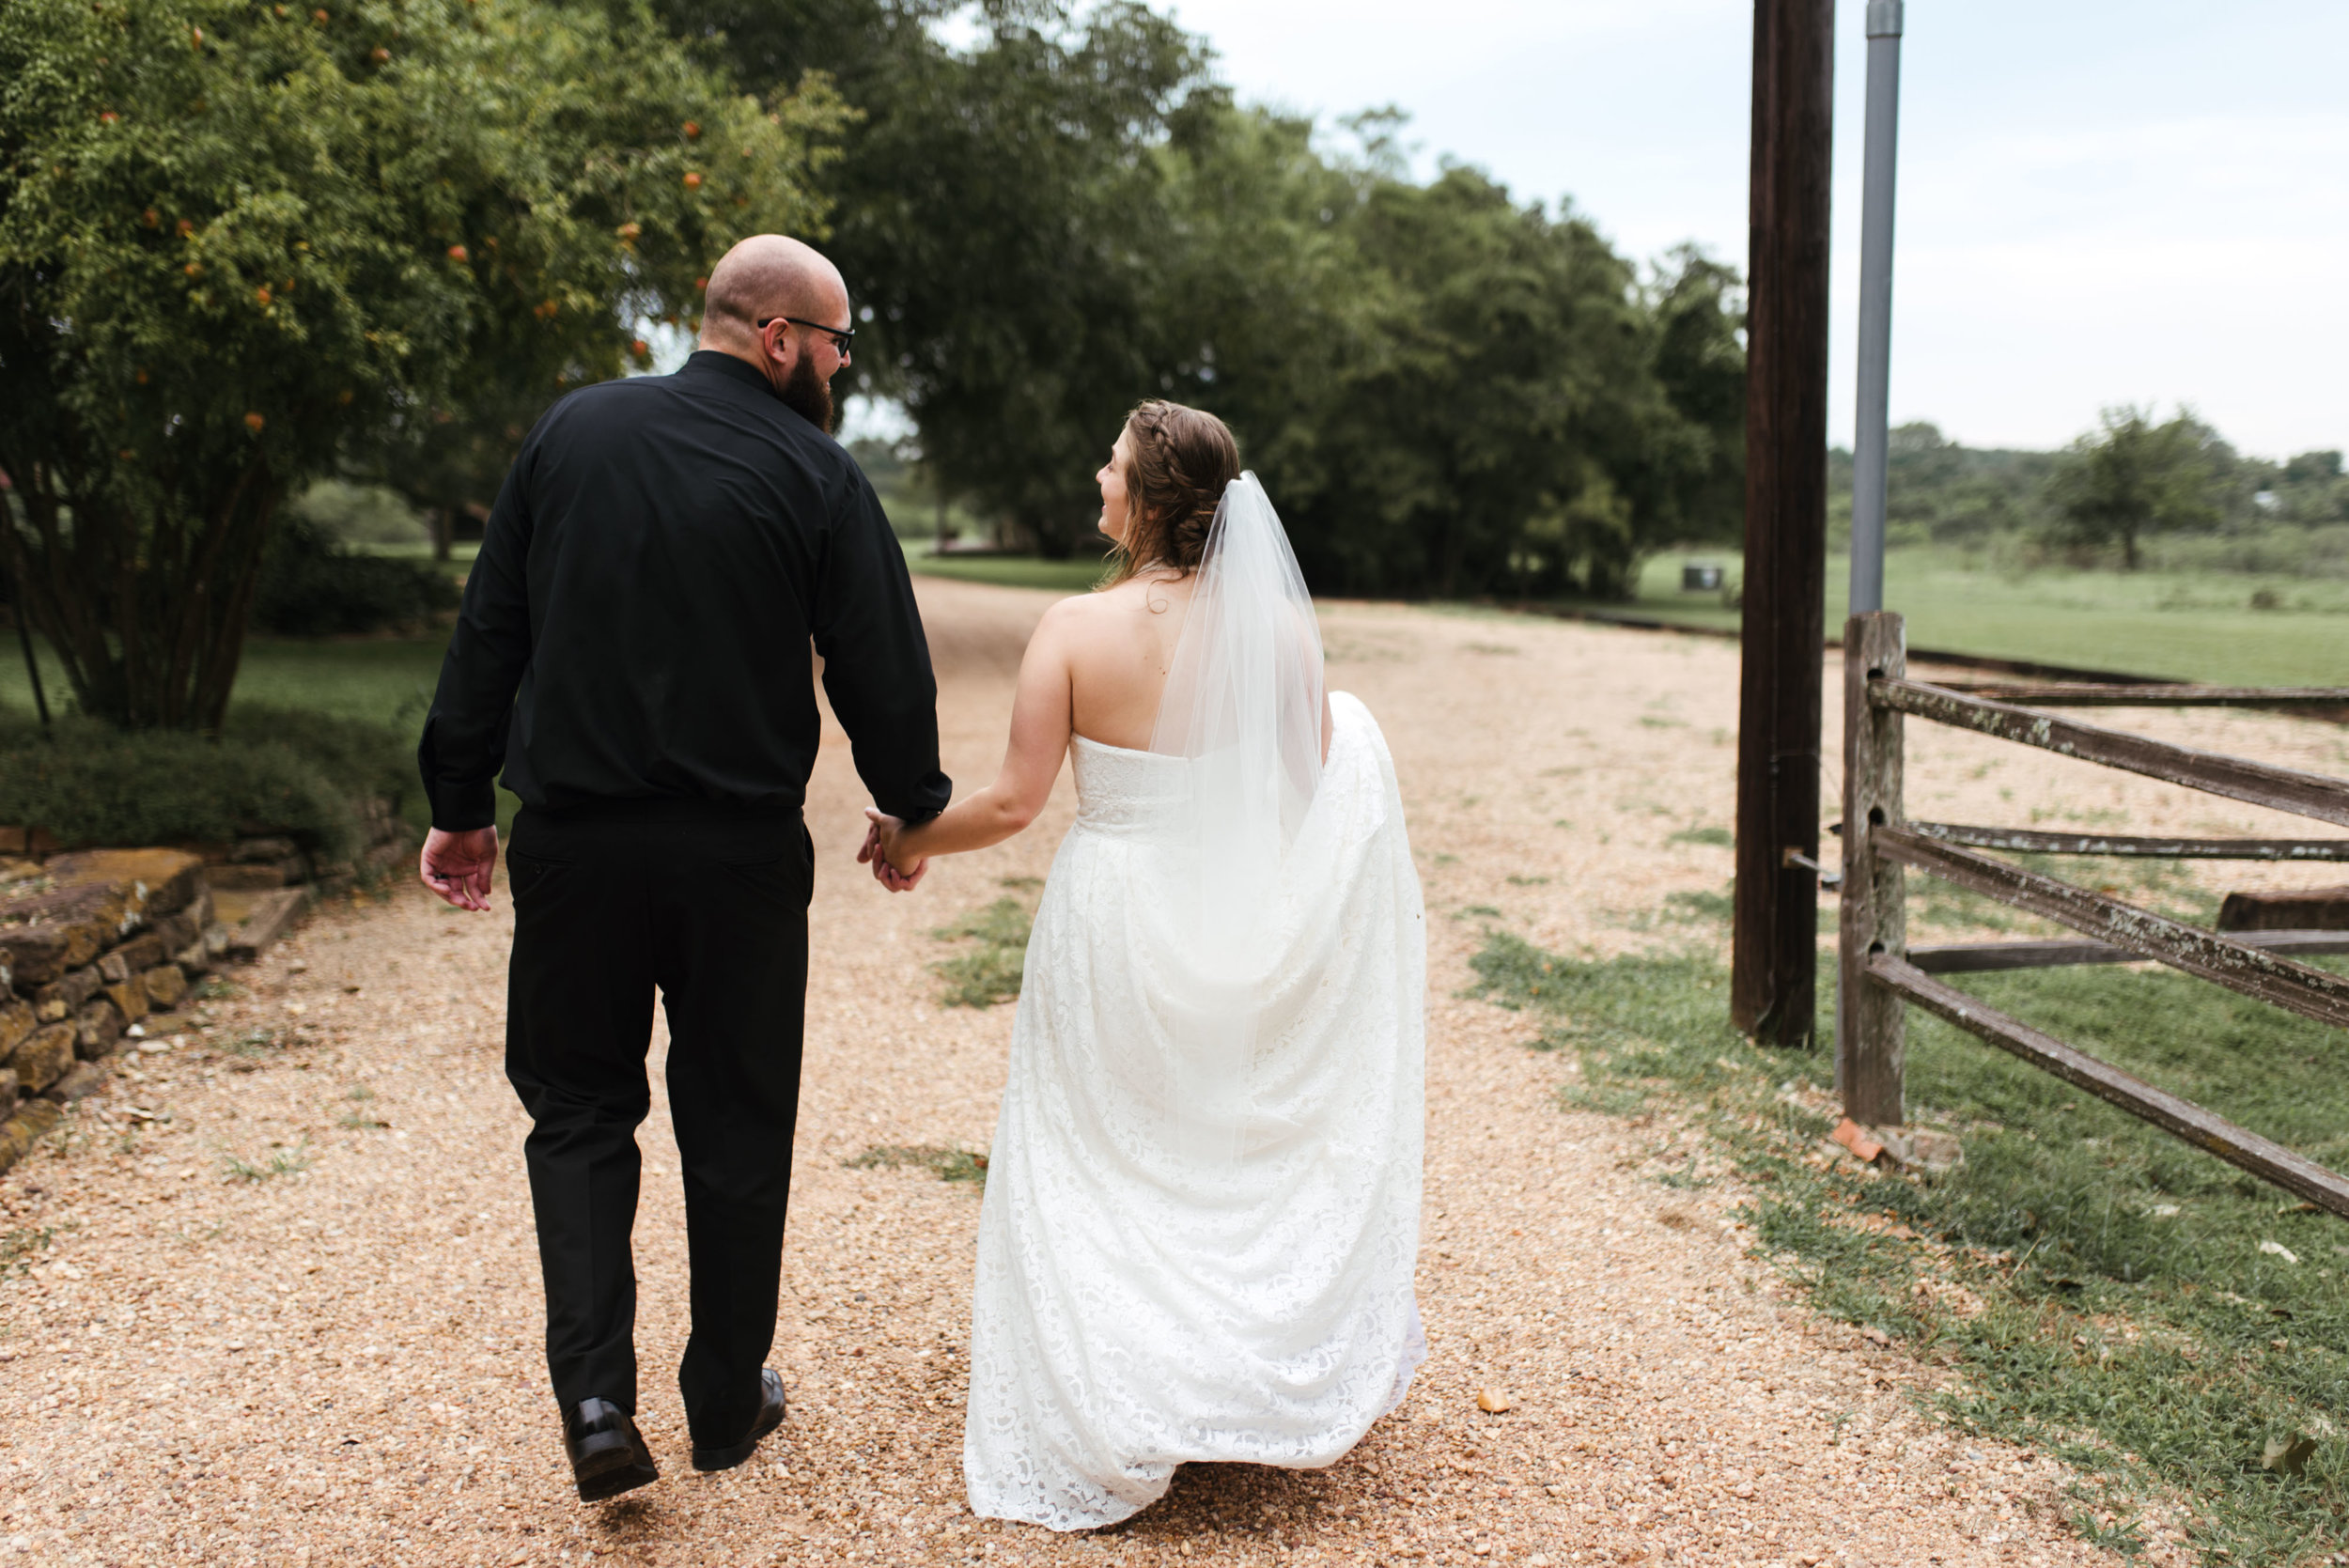 Chappell Hill Wedding | Fort Worth Wedding Photographer | Dallas Wedding Photographer | www.jordanmitchellphotography.com